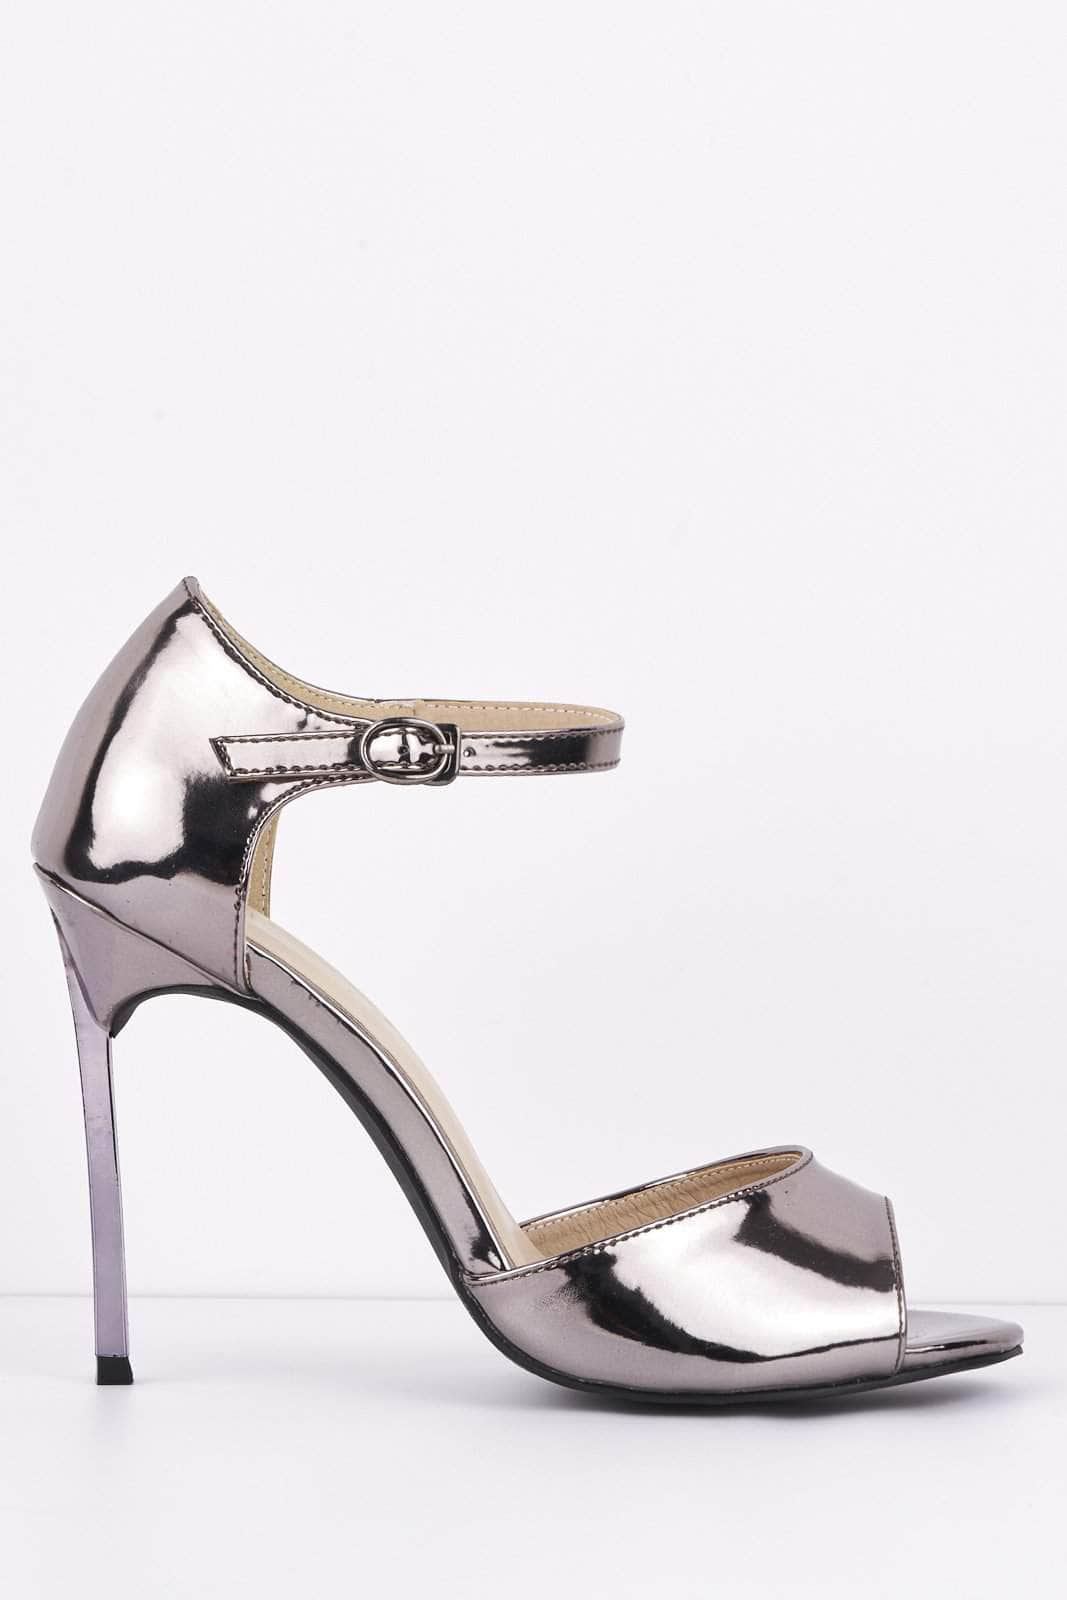 Metallic Gun Metal Peep Toe Heels